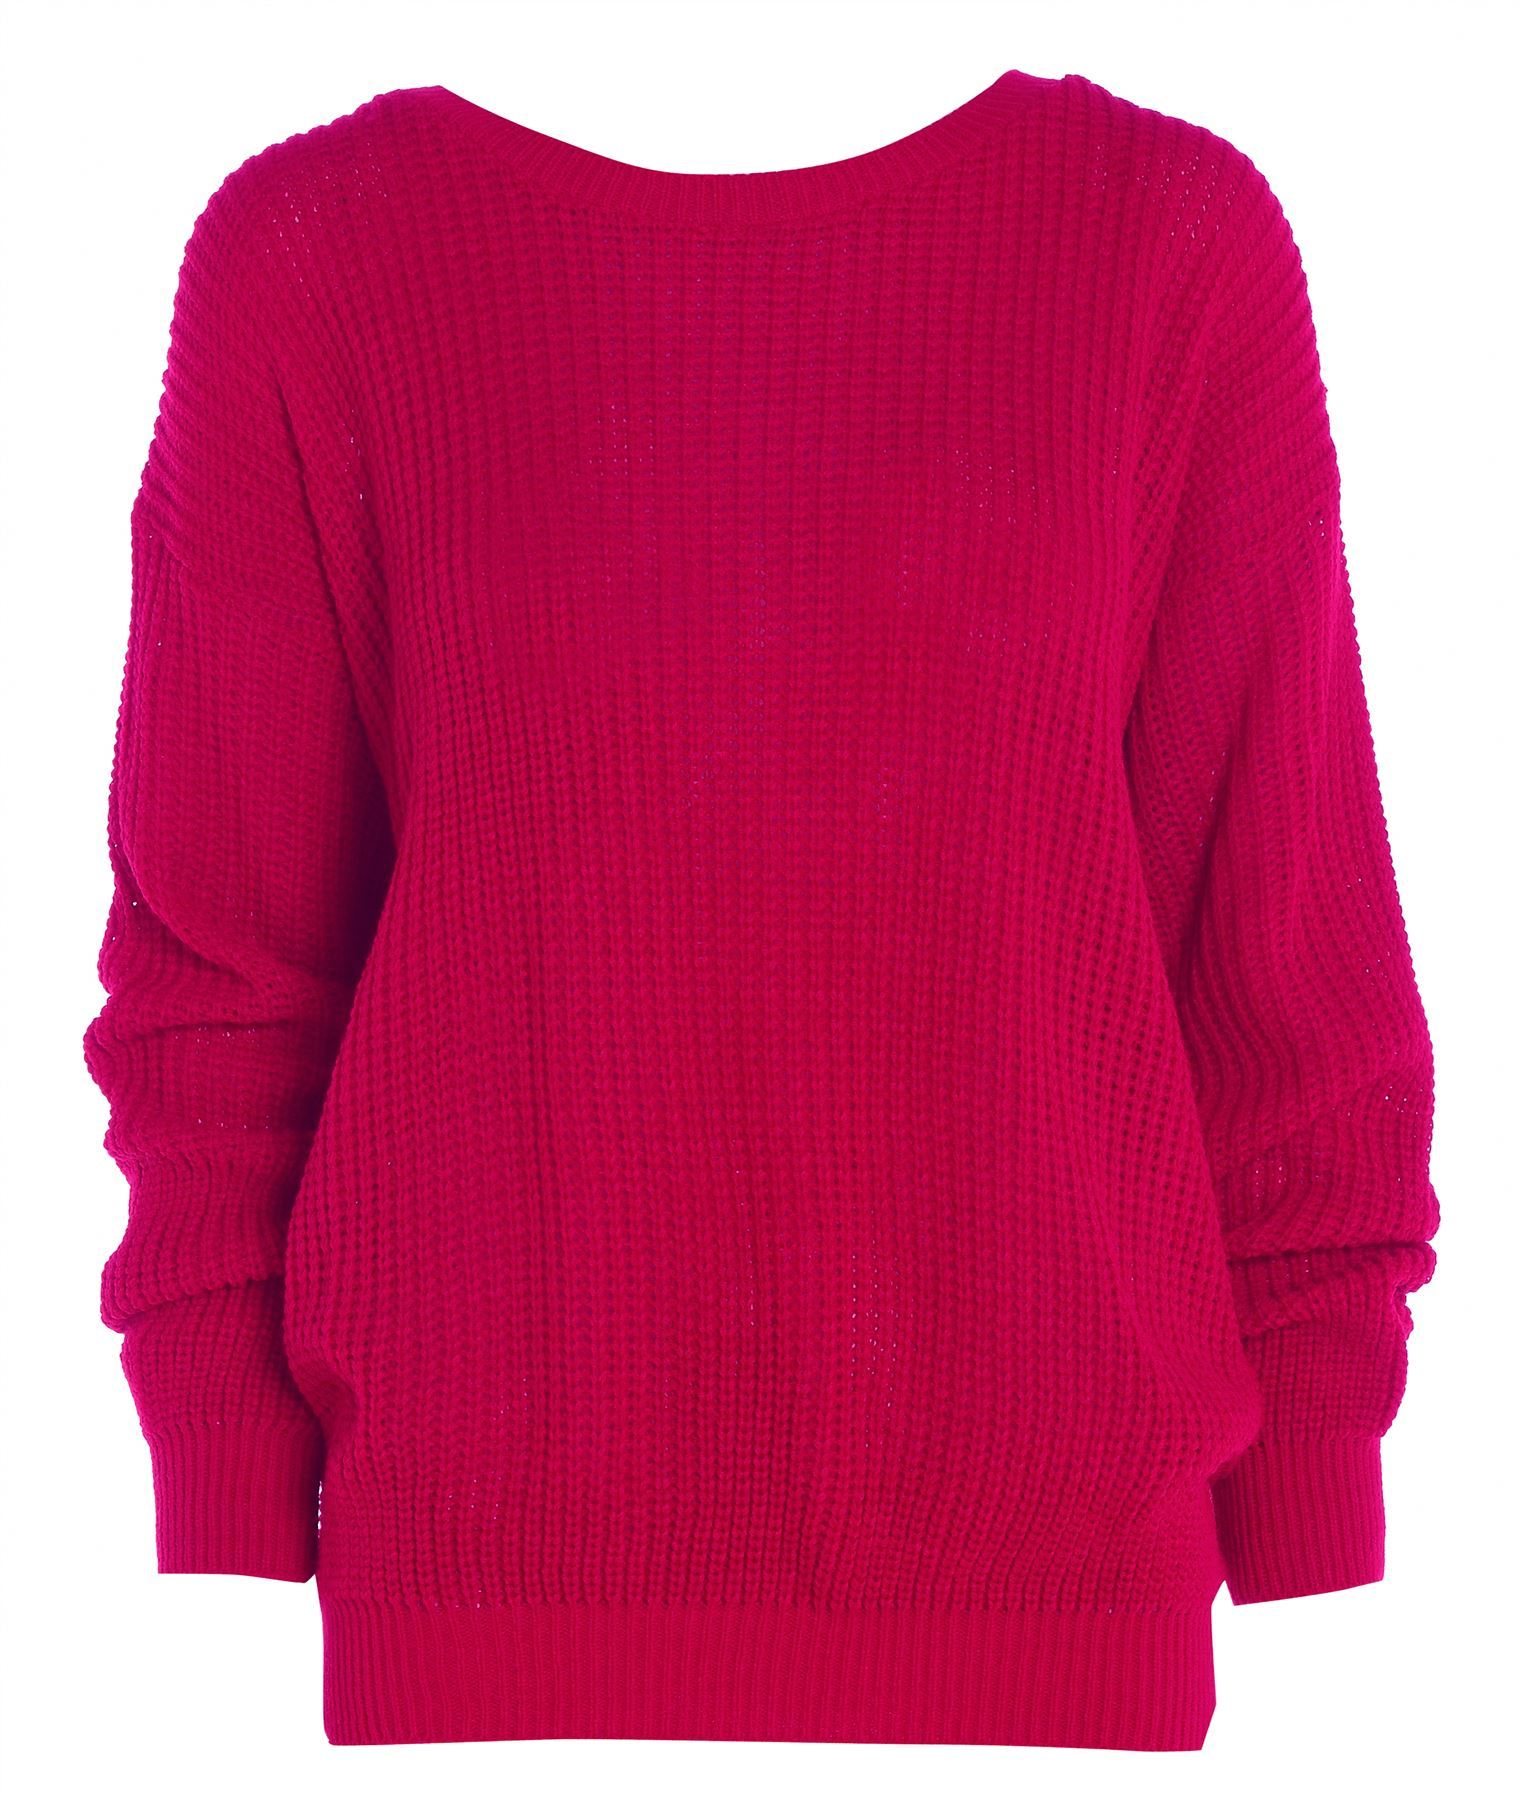 Pxmoda Women's Casual Long Sleeve Turtleneck Knit Sweater Chunky Oversized Pullover Jumper. by Pxmoda. $ - $ $ 14 $ 29 99 Prime. FREE Shipping on eligible orders. Some sizes/colors are Prime eligible. out of 5 stars 5.